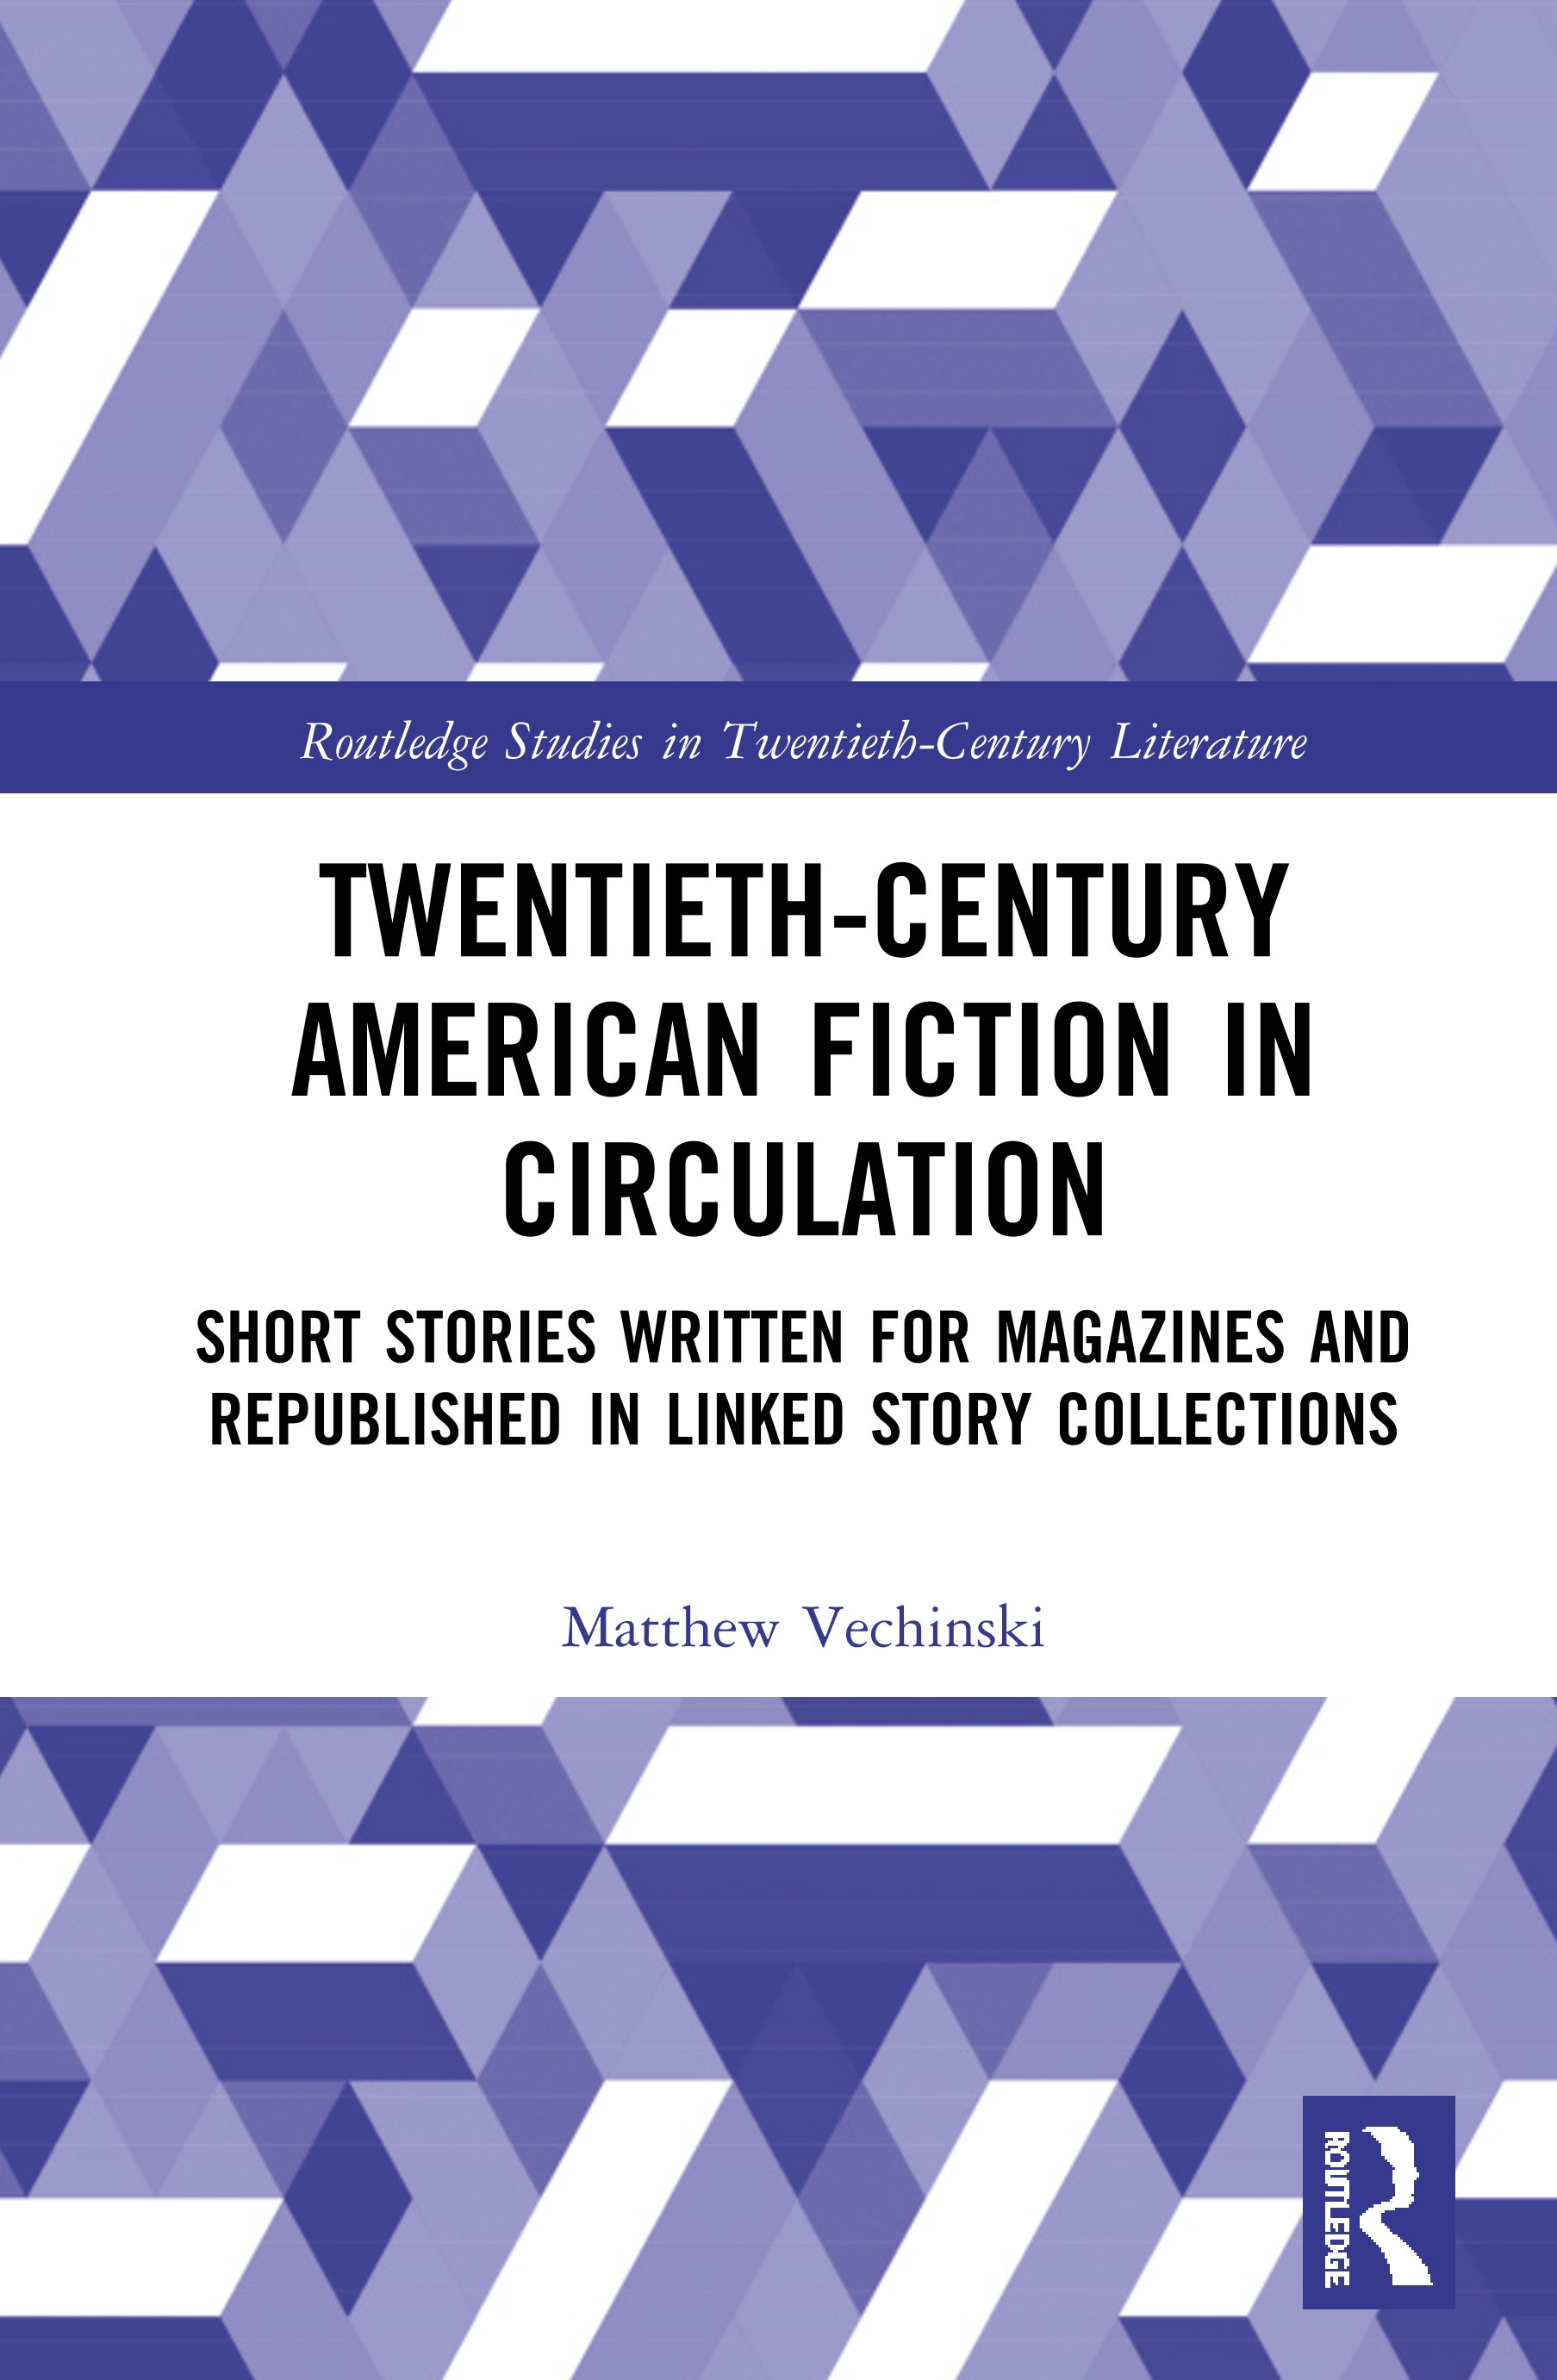 Twentieth-Century American Fiction in Circulation: Short Stories Written for Magazines and Republished in Linked Story Collections, 1st Edition (Hardback) book cover